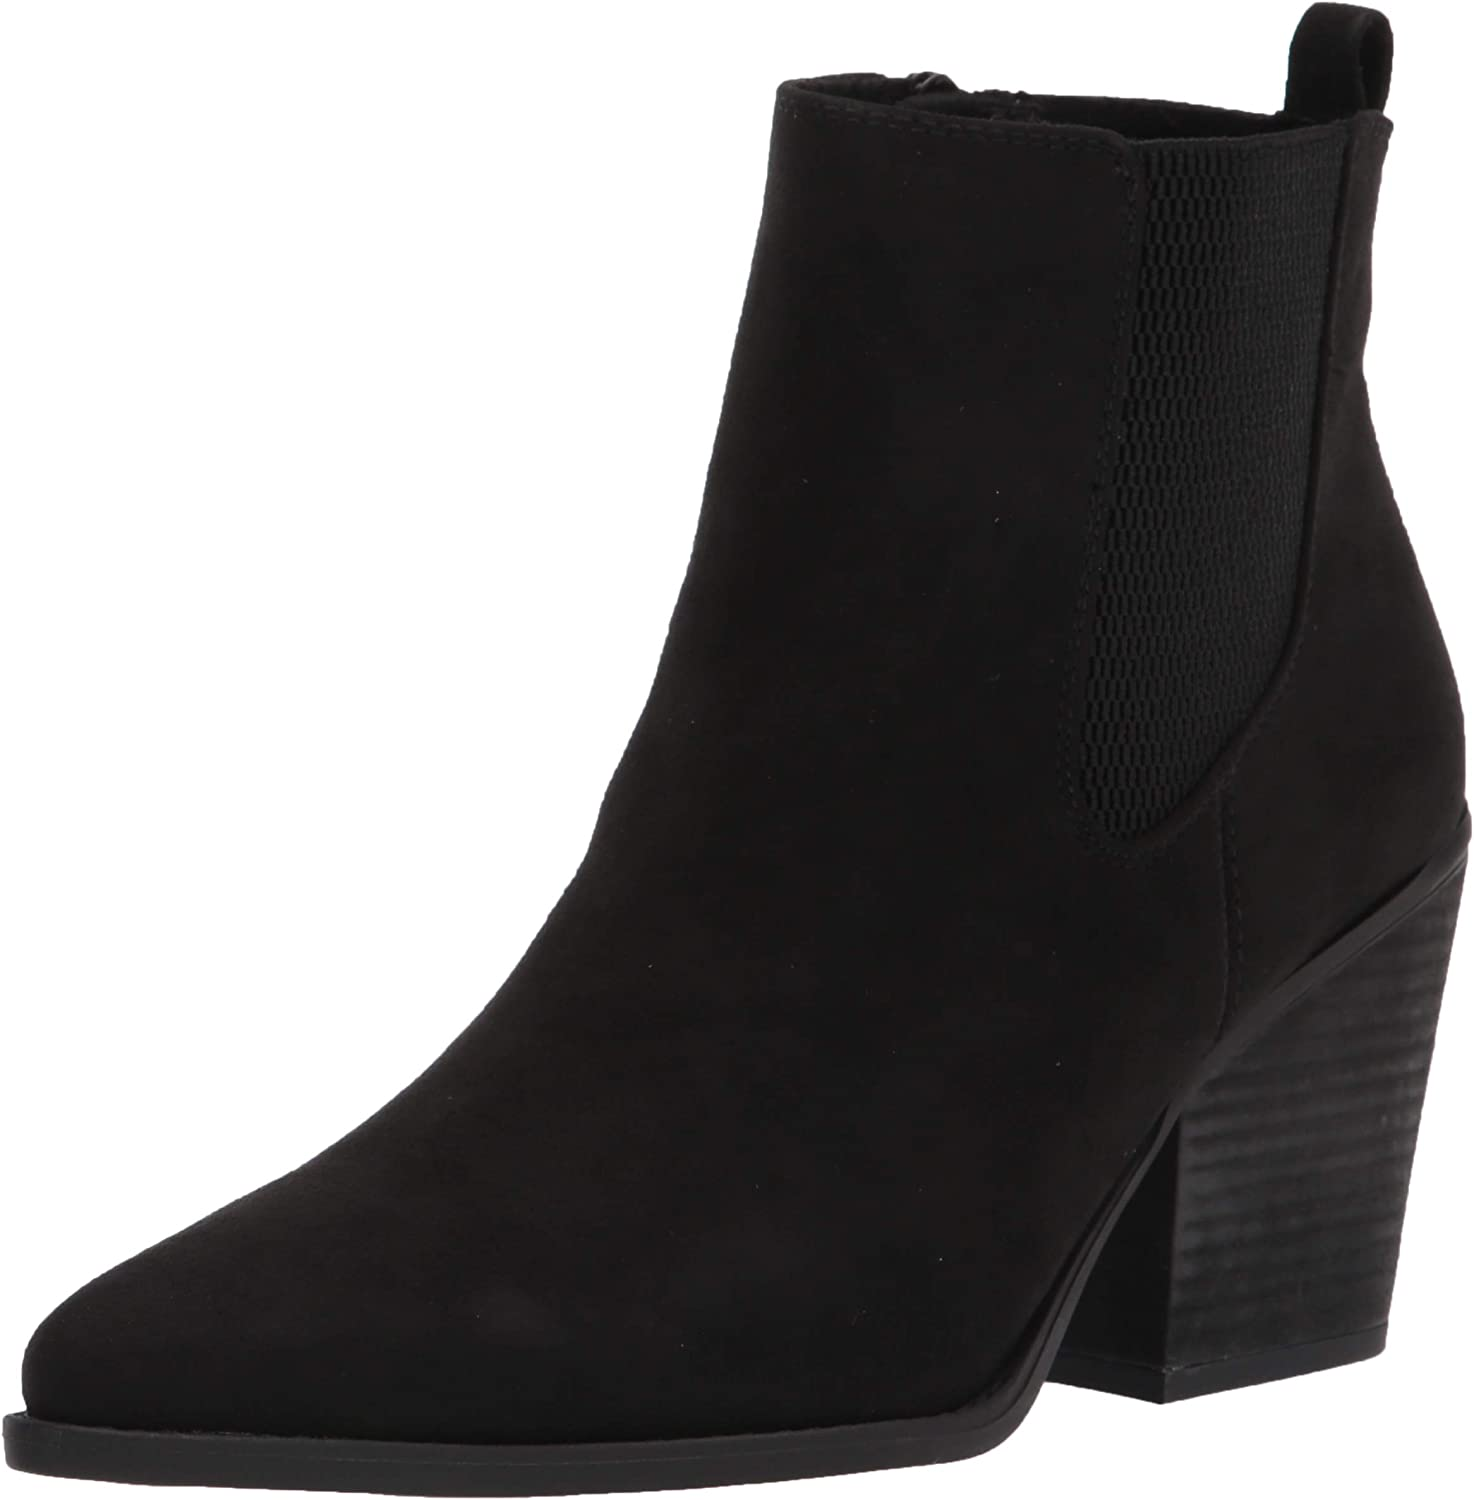 SOUL Naturalizer Women's Micah Low price Ankle Boot Tulsa Mall Booties